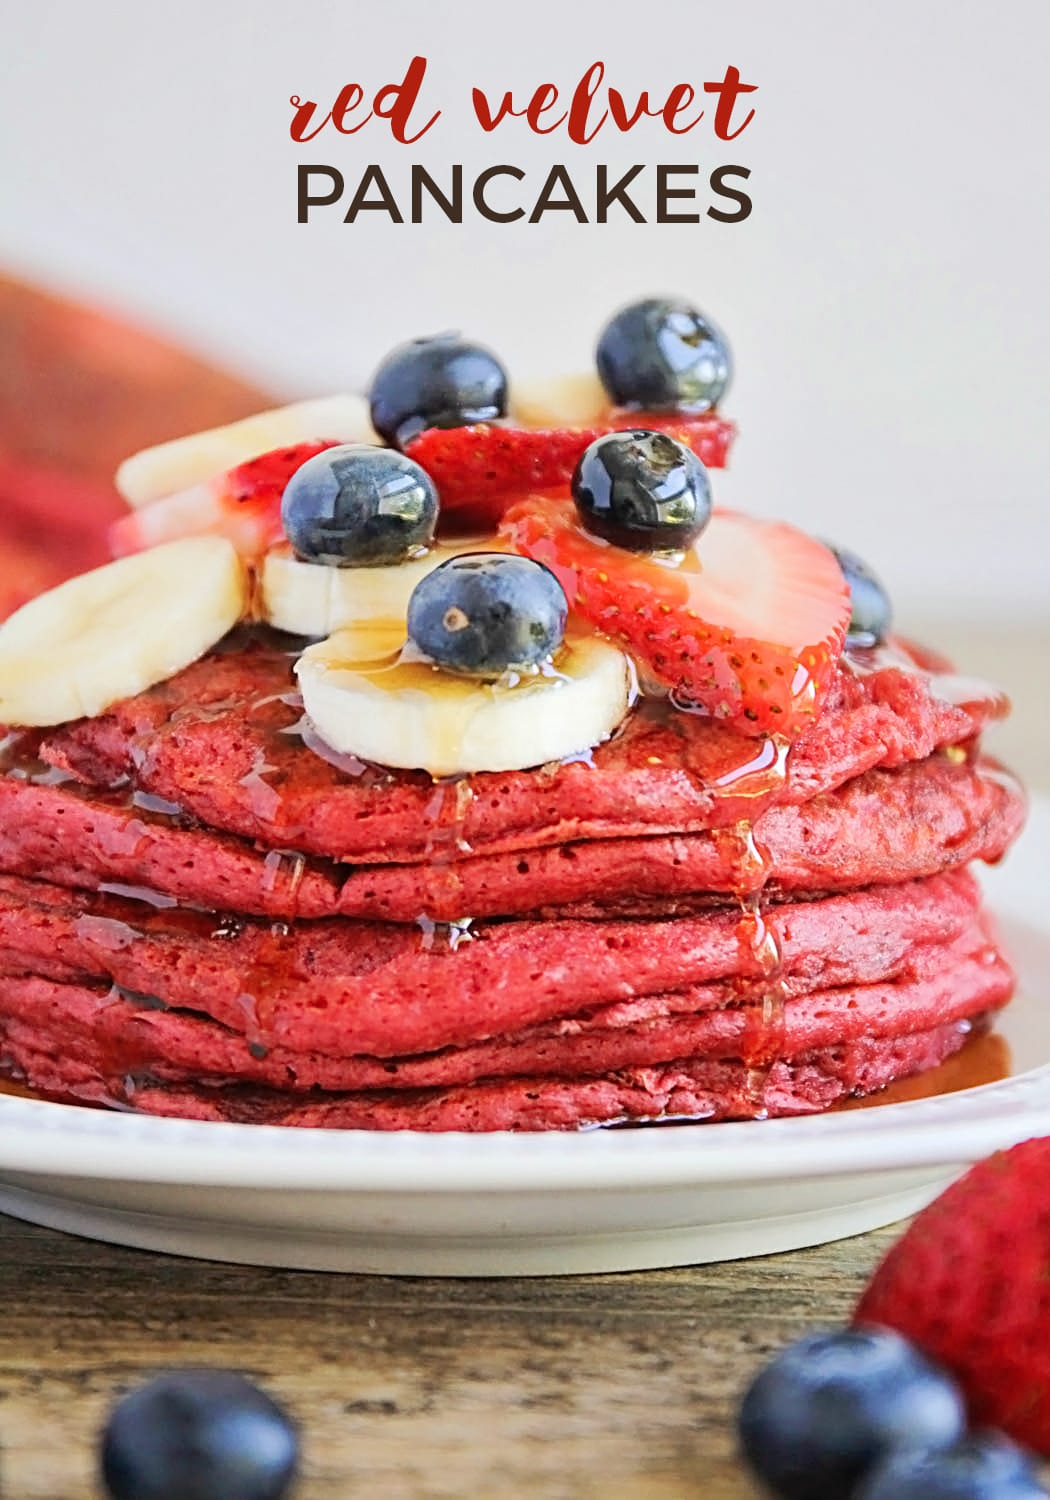 These Red Velvet Pancakes Are So Indulgent And Delicious!  If You're On The Hunt For A Show-Stopping Breakfast, Look No Further! These Red Velvet Pancakes Are As Beautiful As They Are Delicious, And Perfect For Any Special Occasion Breakfast. #breakfastrecipe #redvelvetpancakesrecipe #easyrecipe #valentinesday via @somewhatsimple